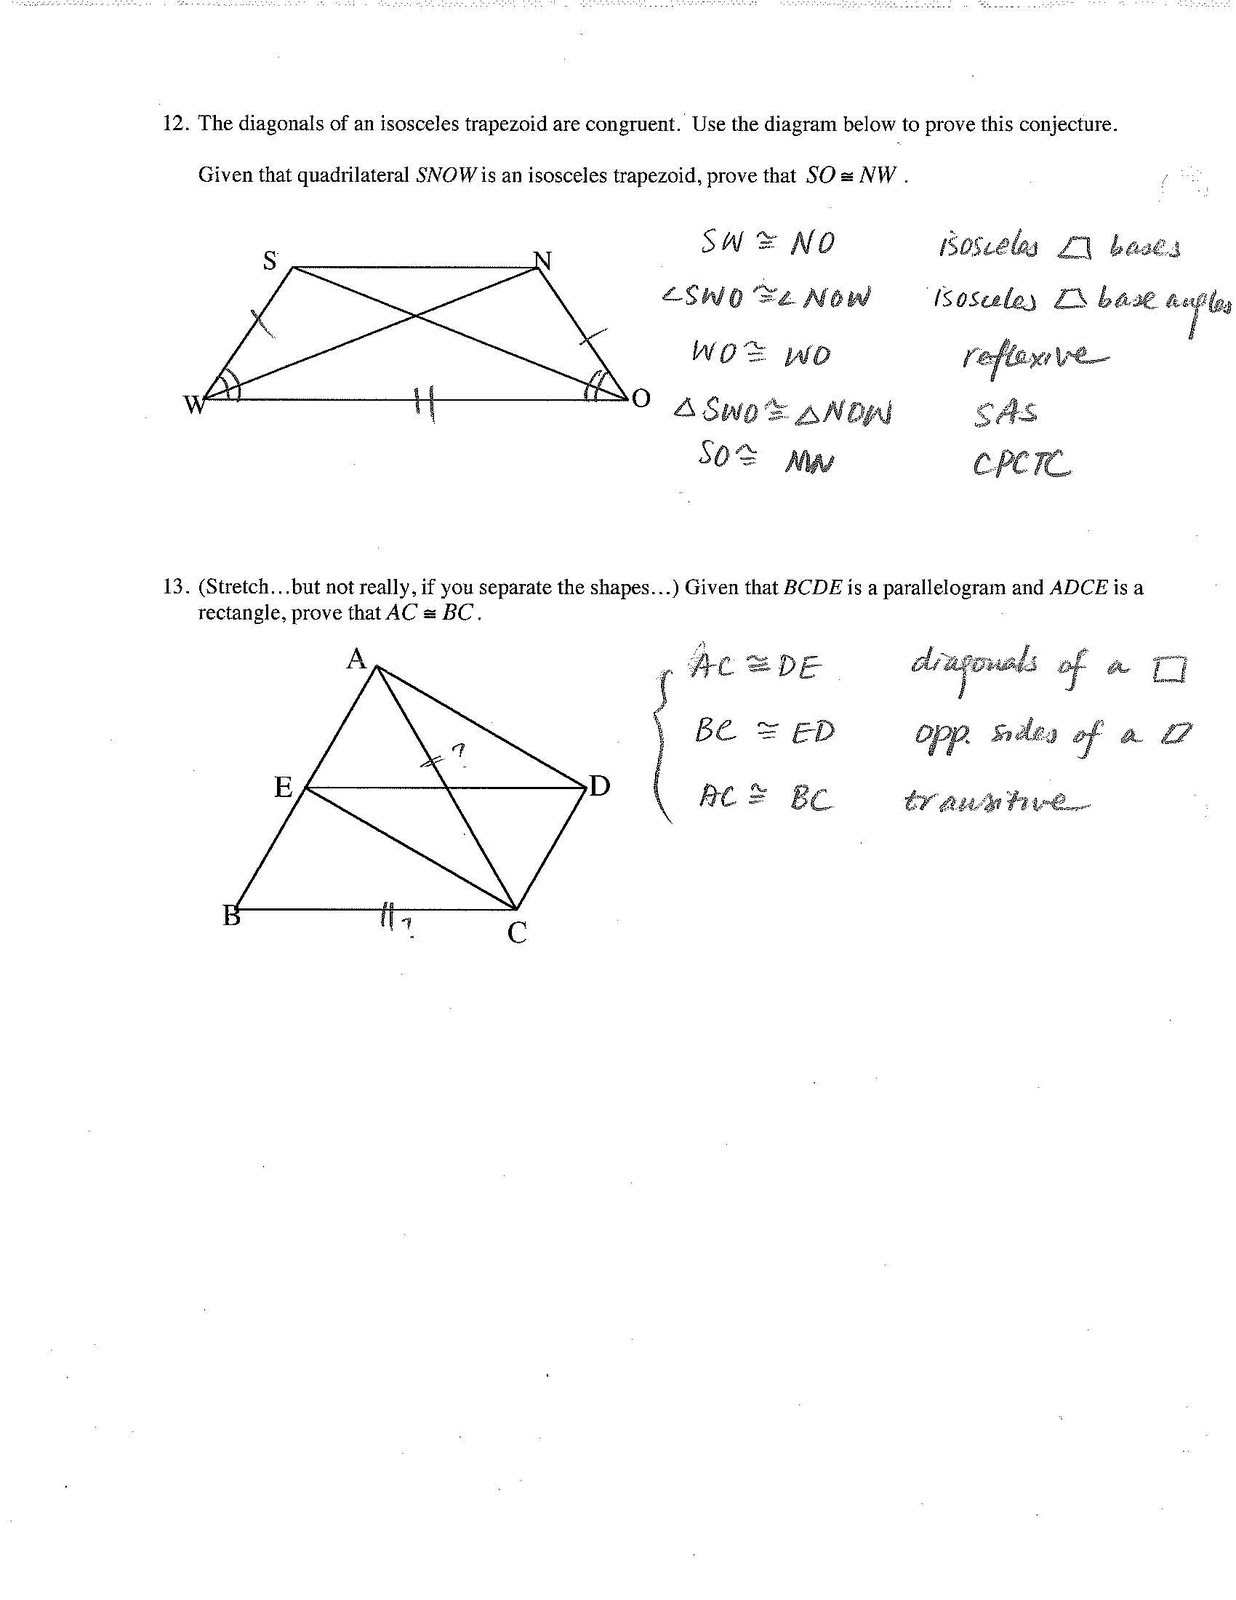 medium resolution of Unit 7 polygons and quadrilaterals homework 3 answer key